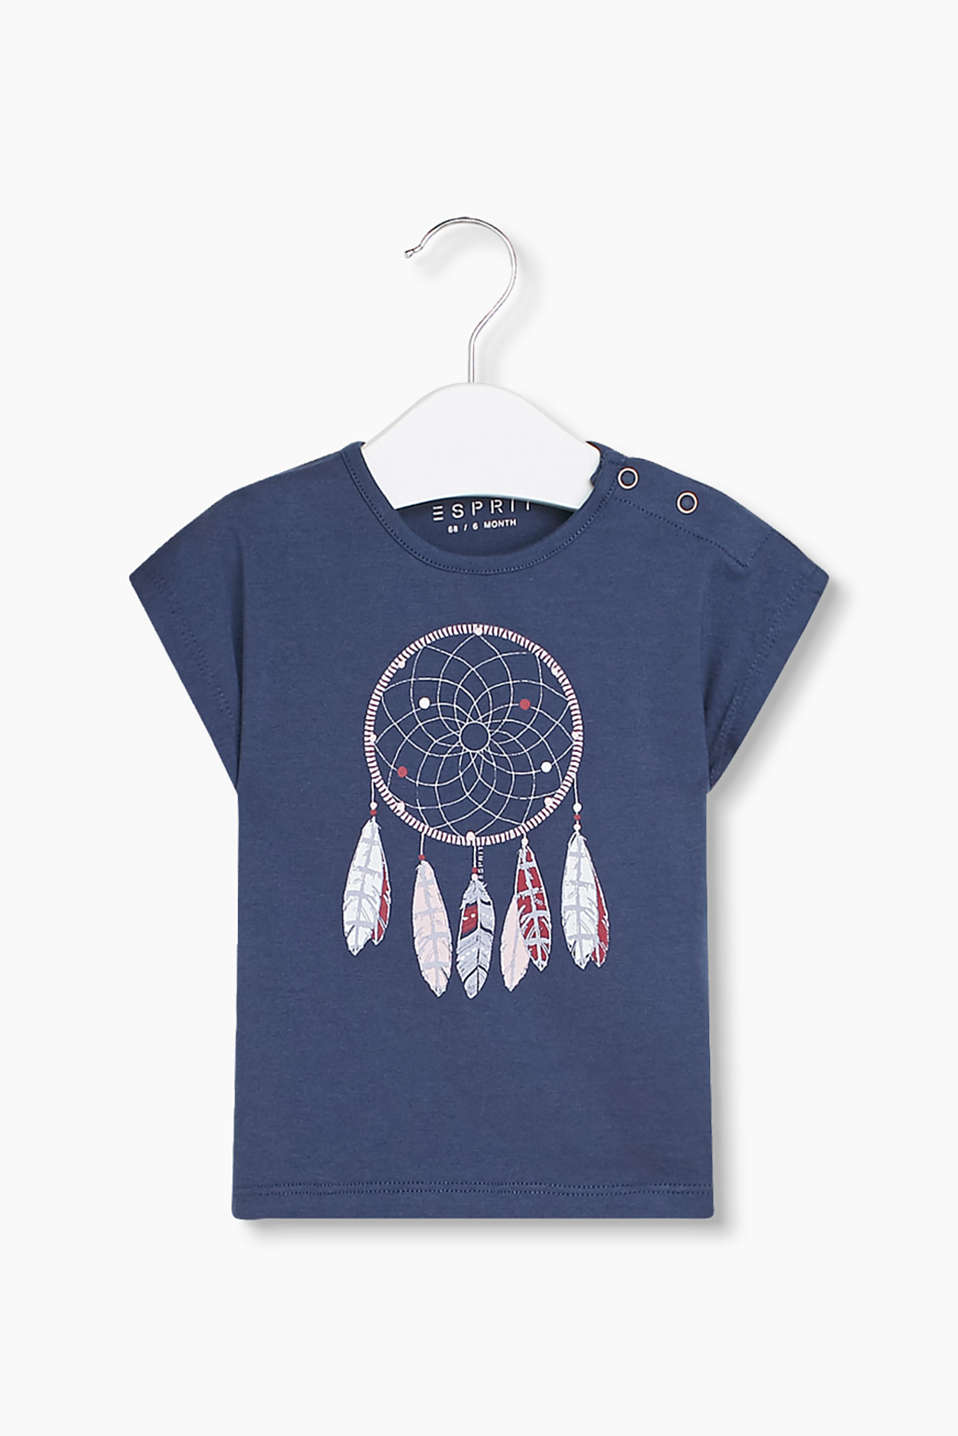 with a pretty dream-catcher print